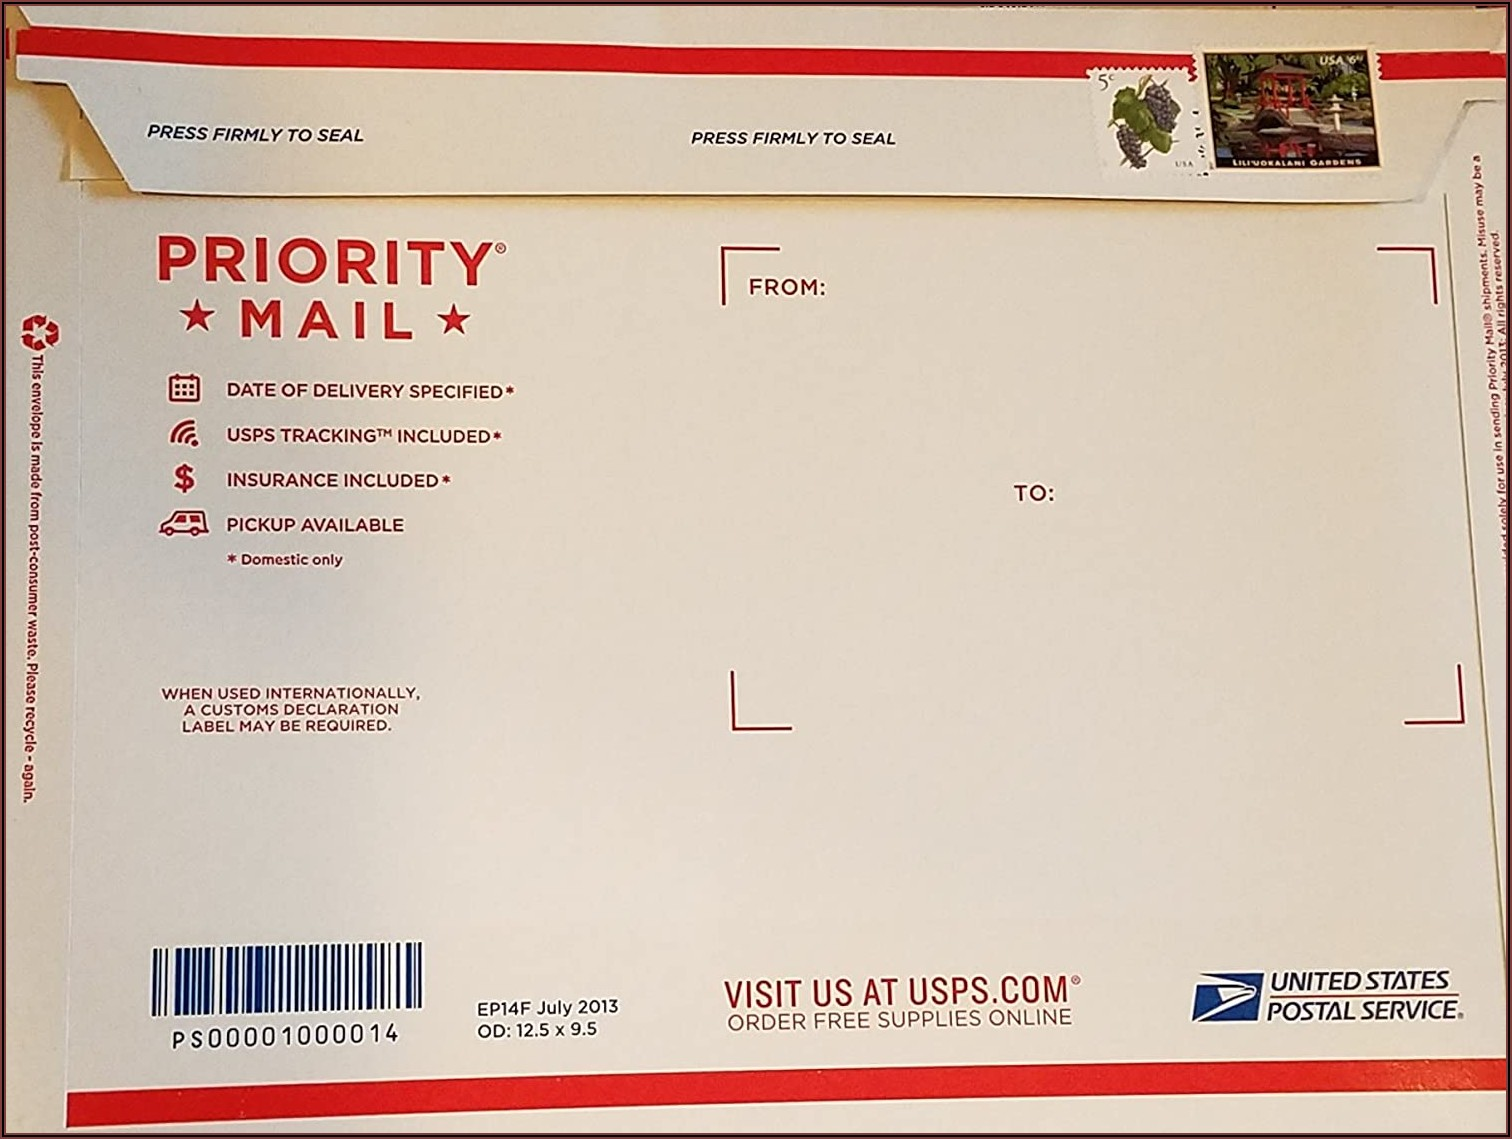 Usps Priority Mail Envelope Dimensions